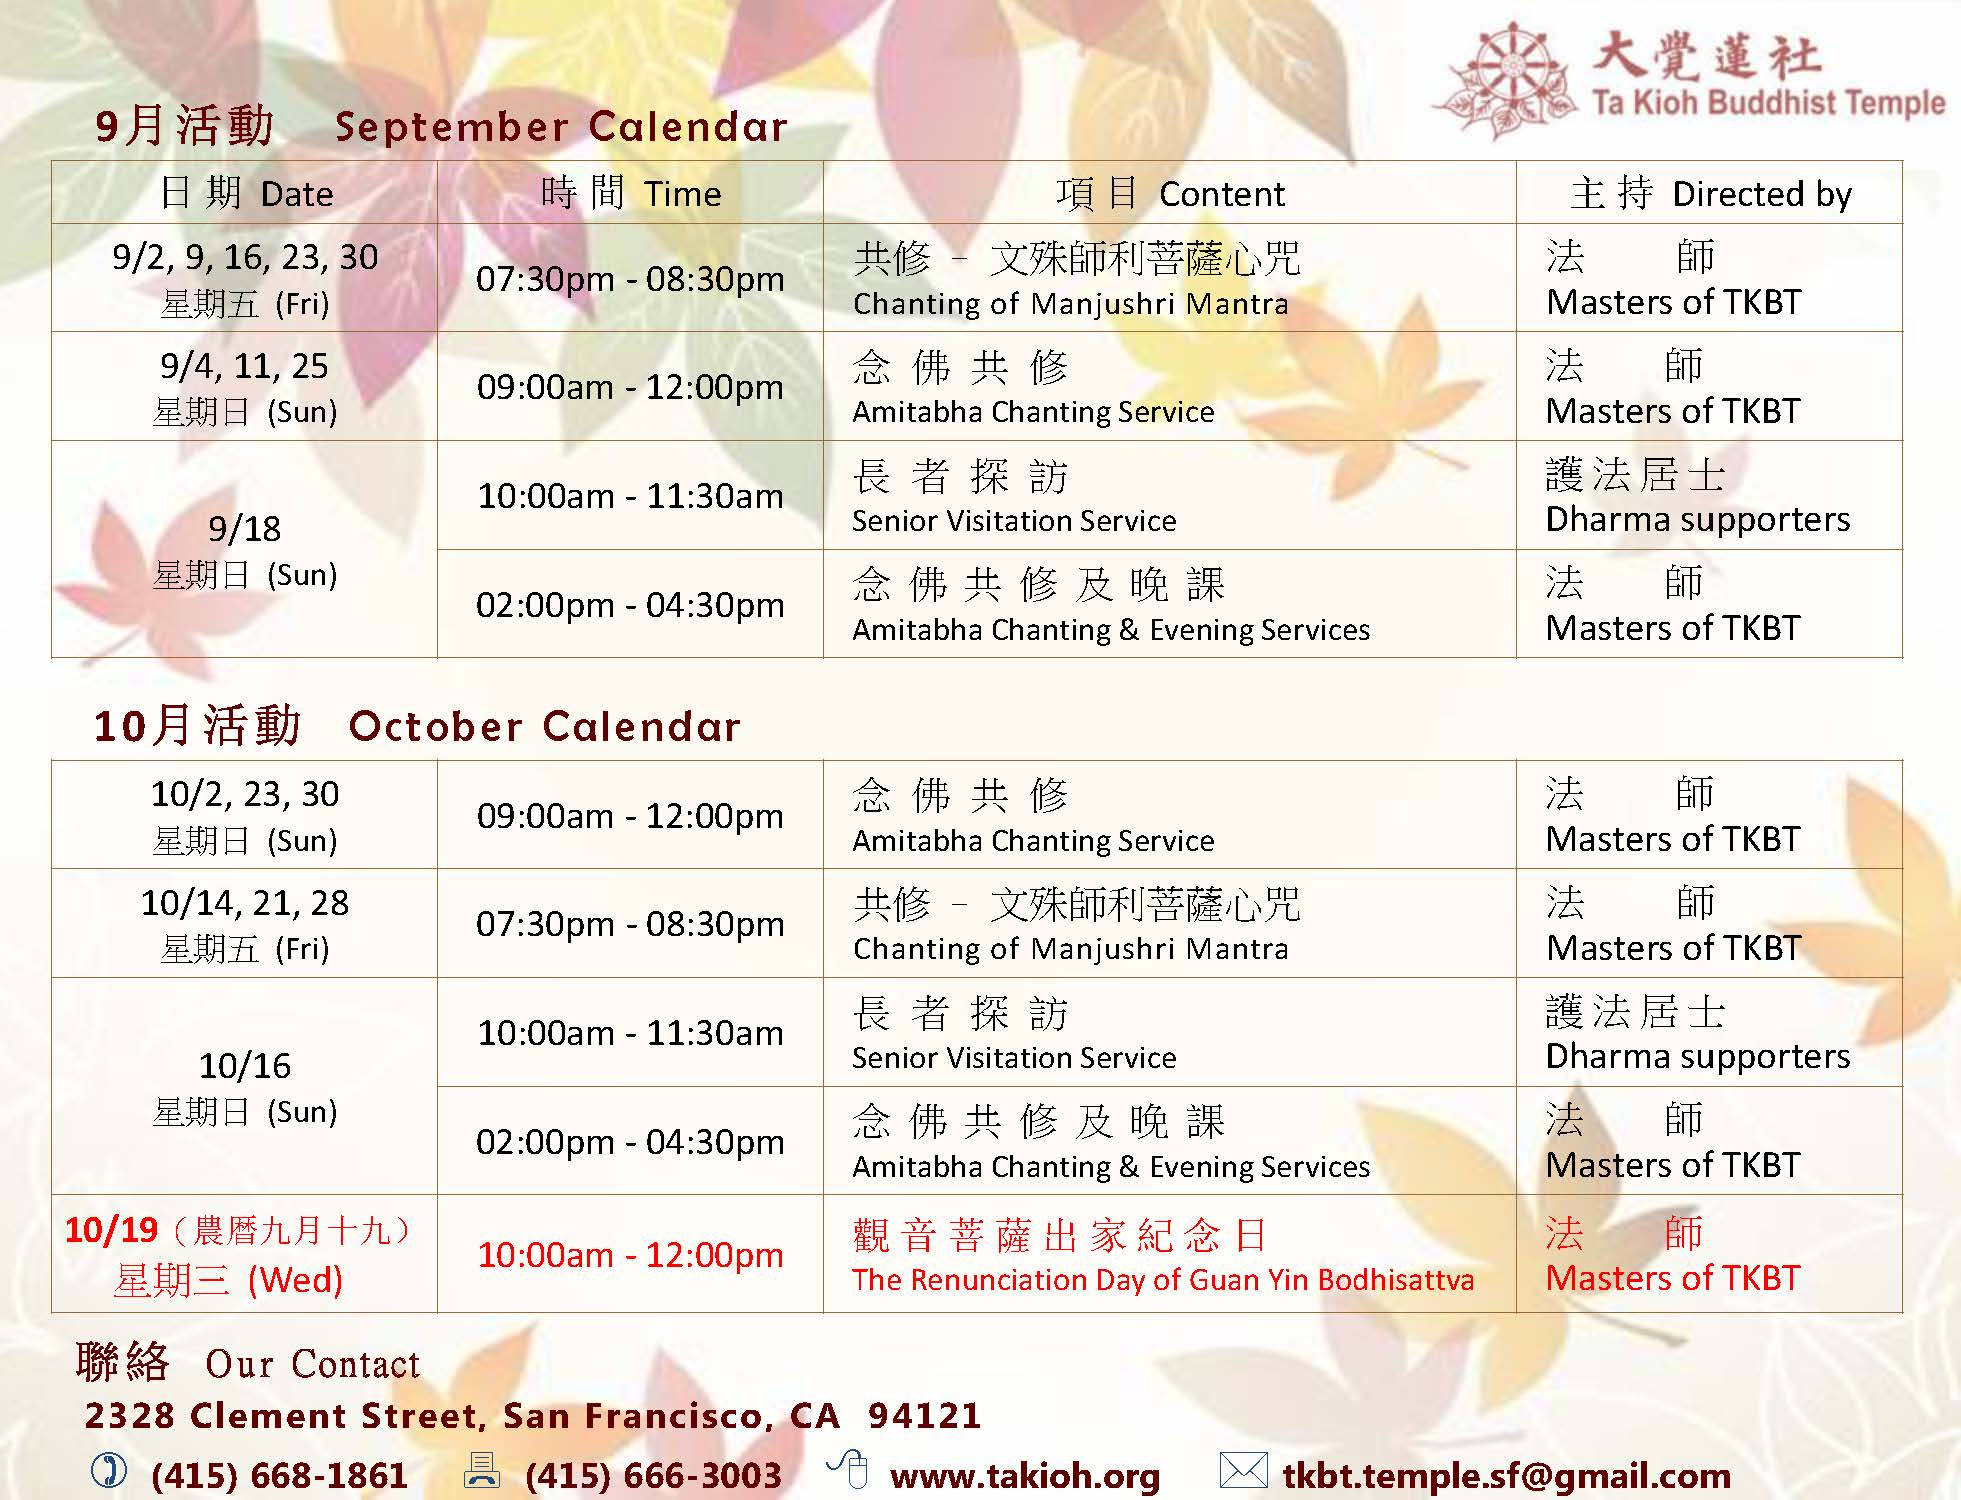 Temple event for September and October